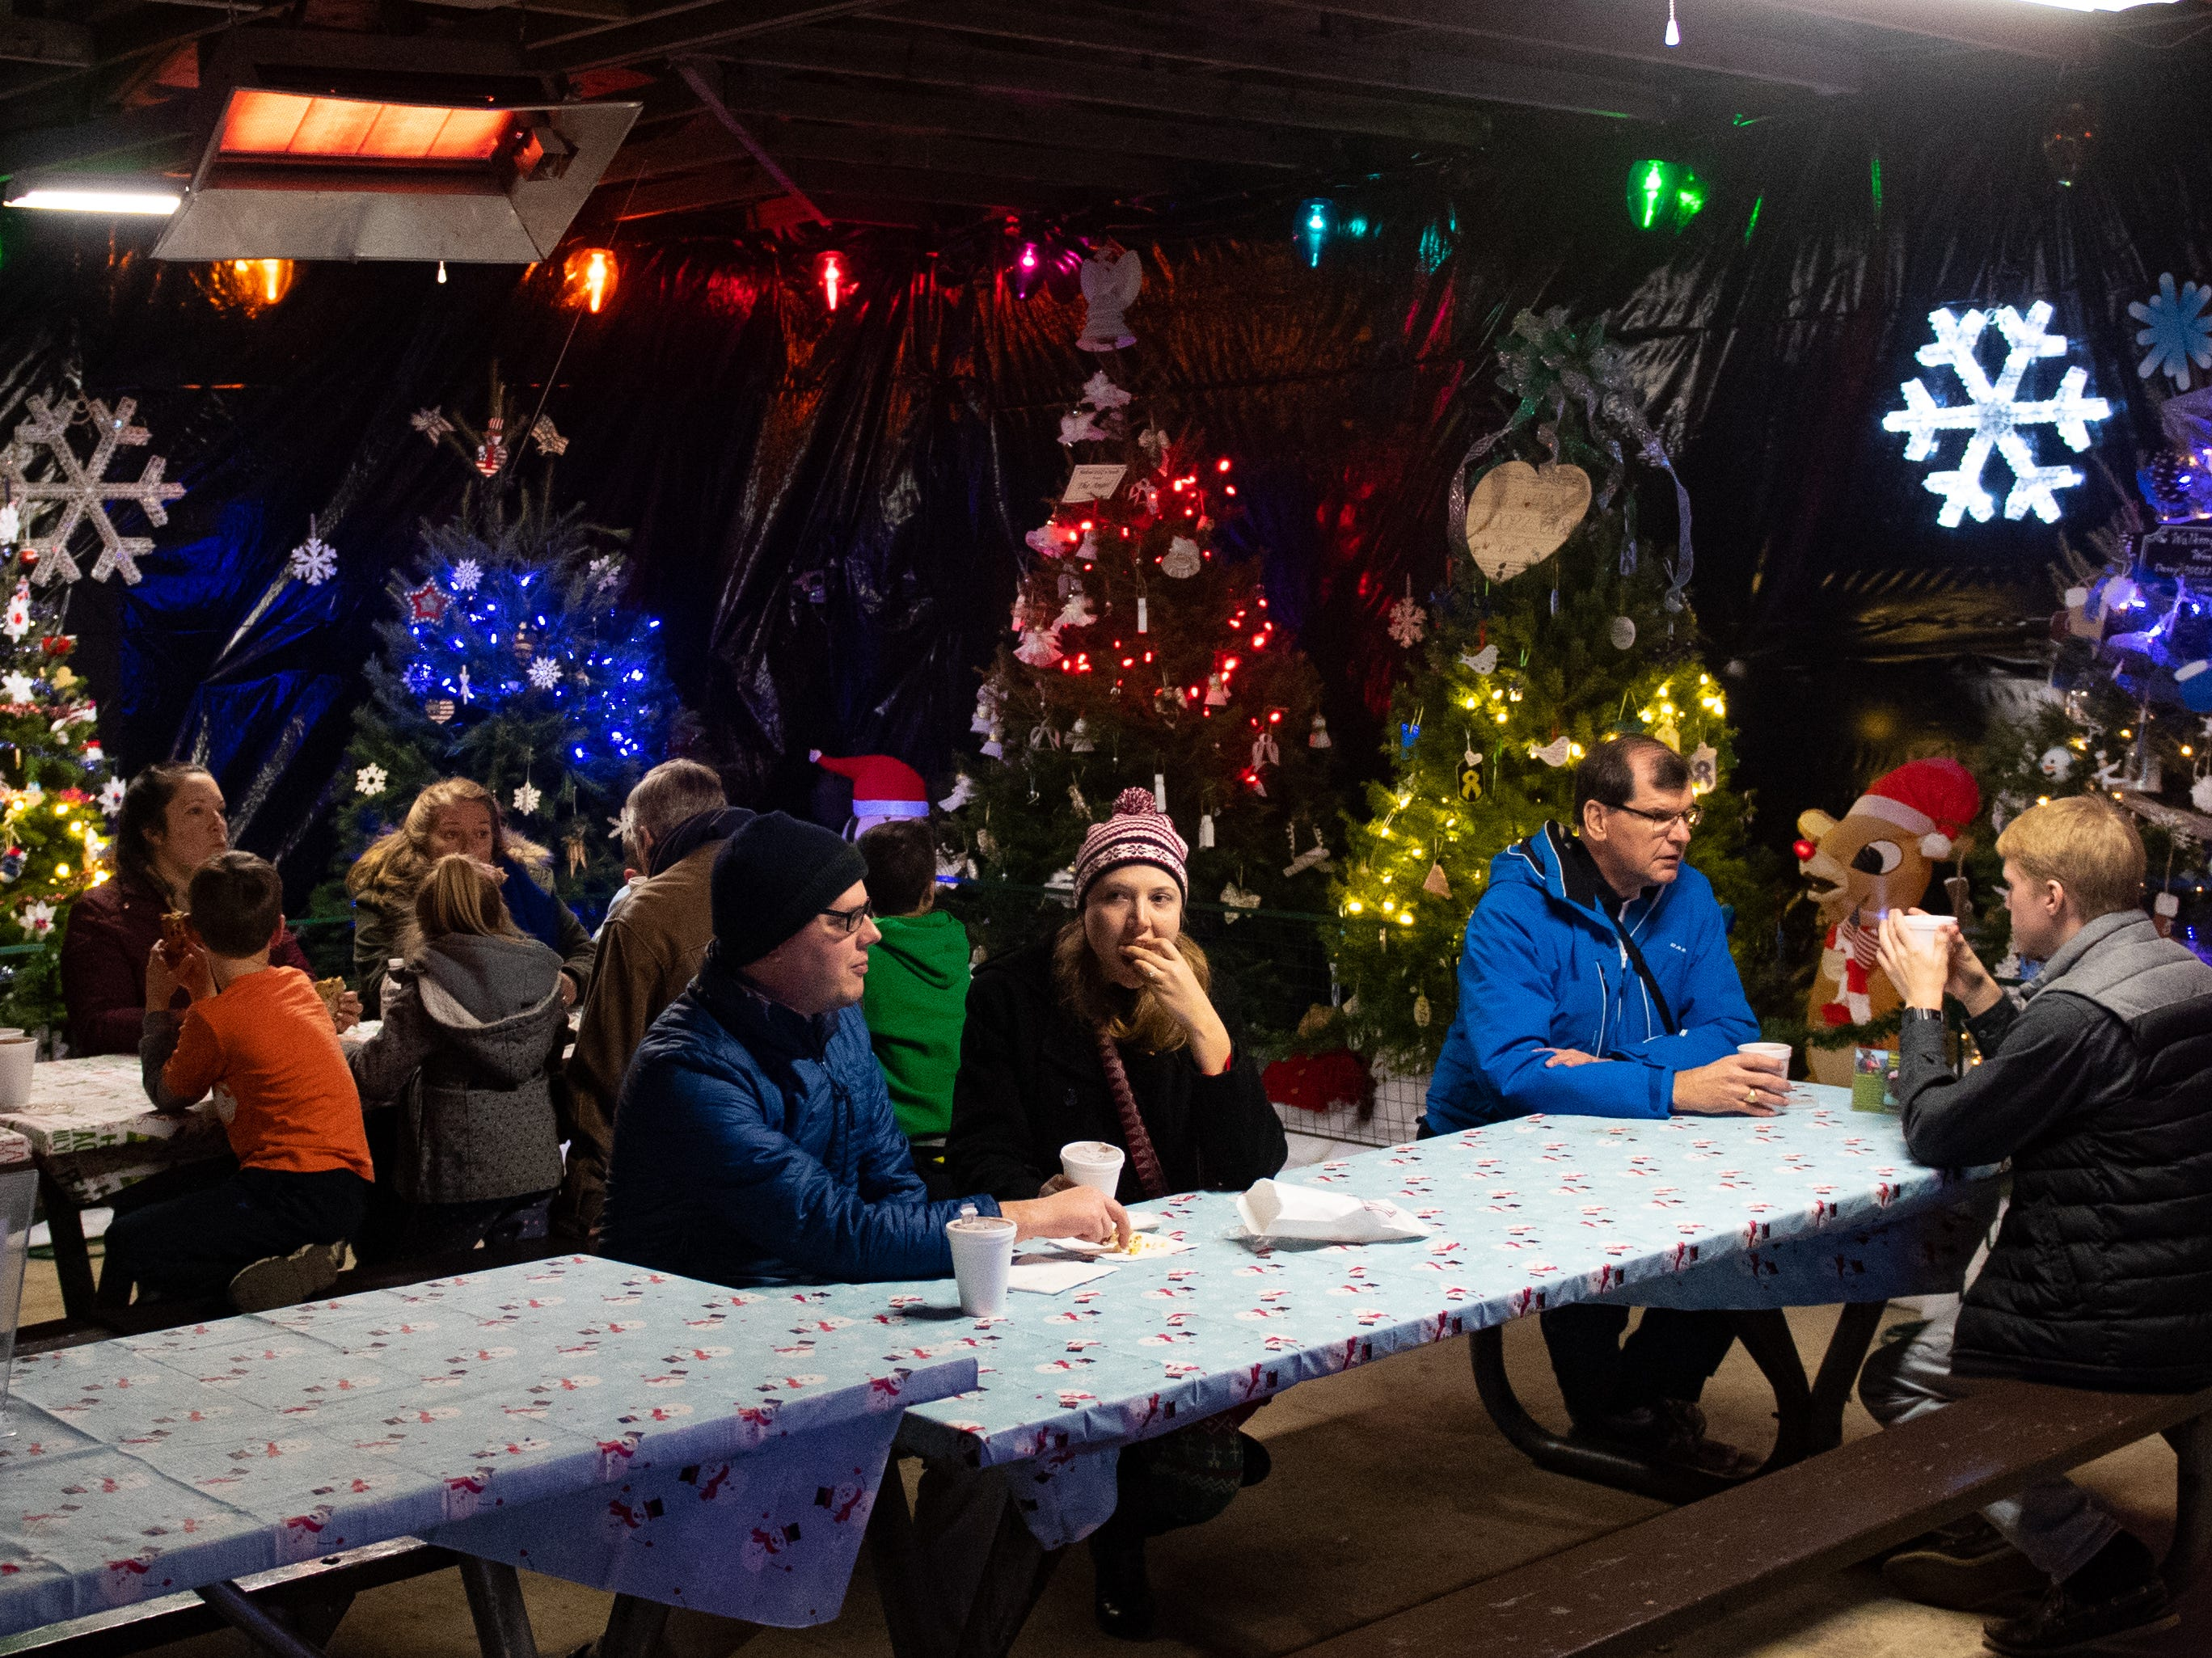 Guests take a break in room filled with Christmas tries at Christmas Magic 2018 at Rocky Ridge County Park in Springettsbury Township, Thursday, November 29, 2018.